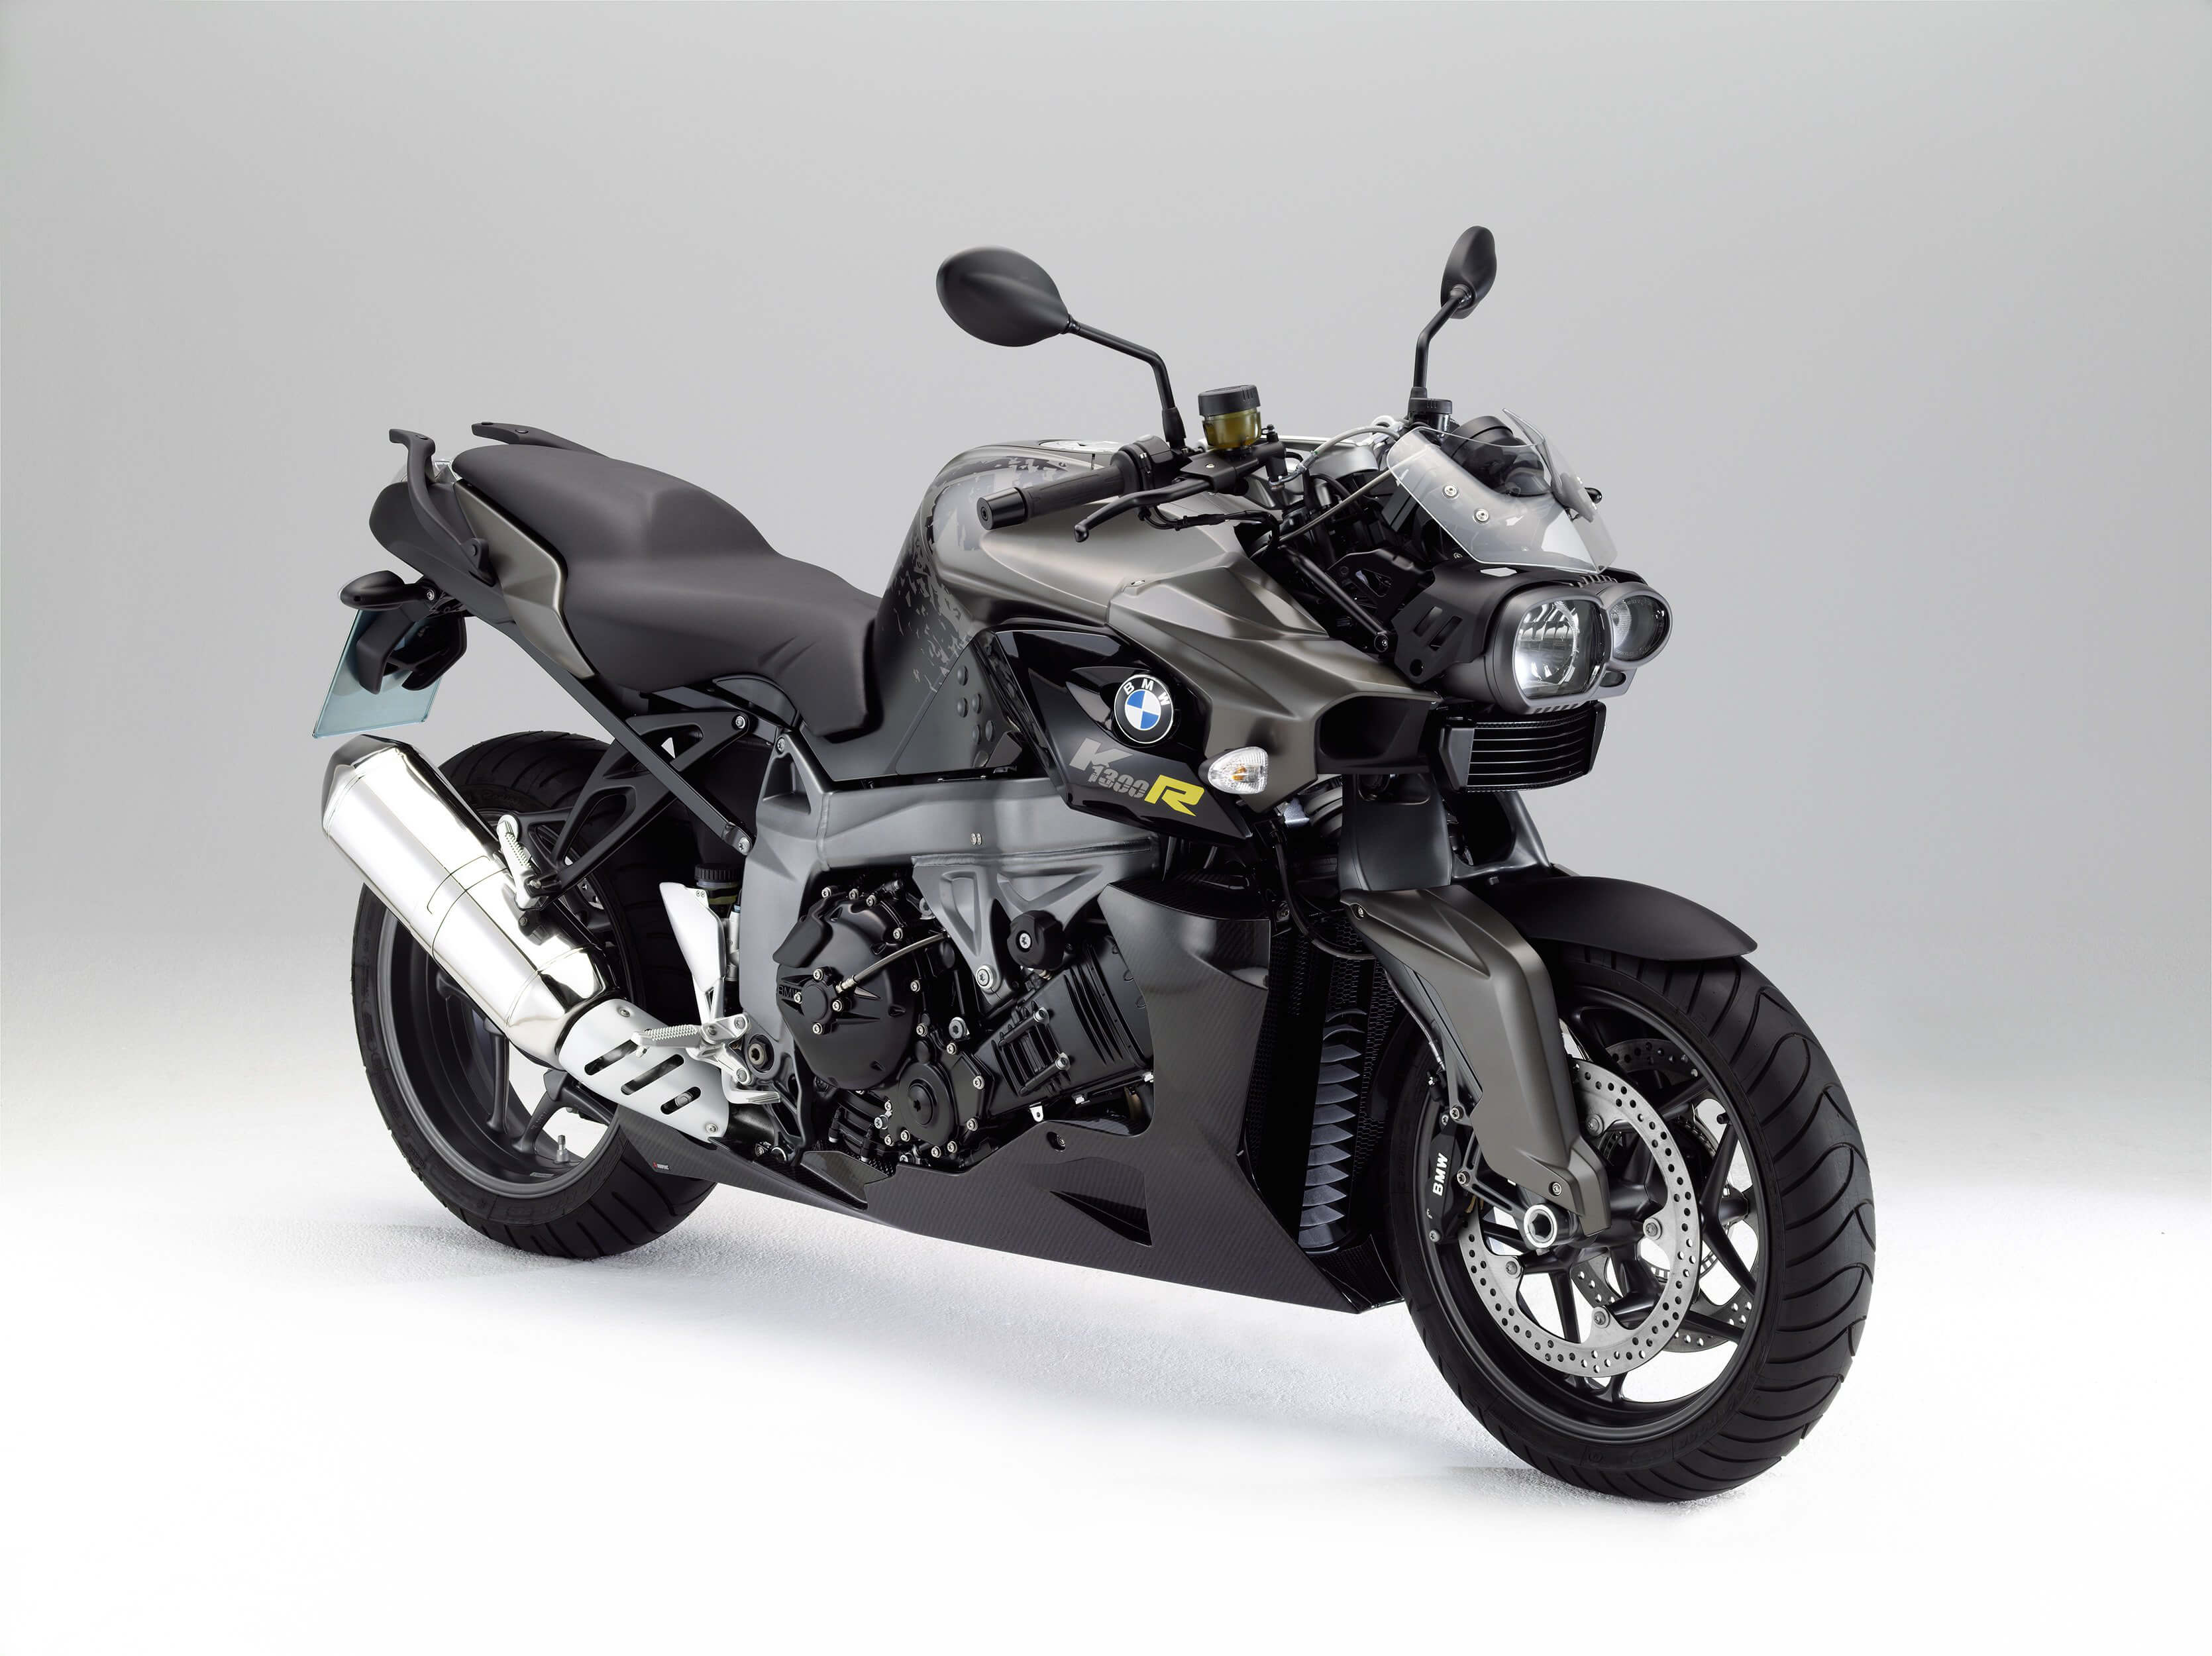 Whats a motorcycle forum without a few of these | Page 2